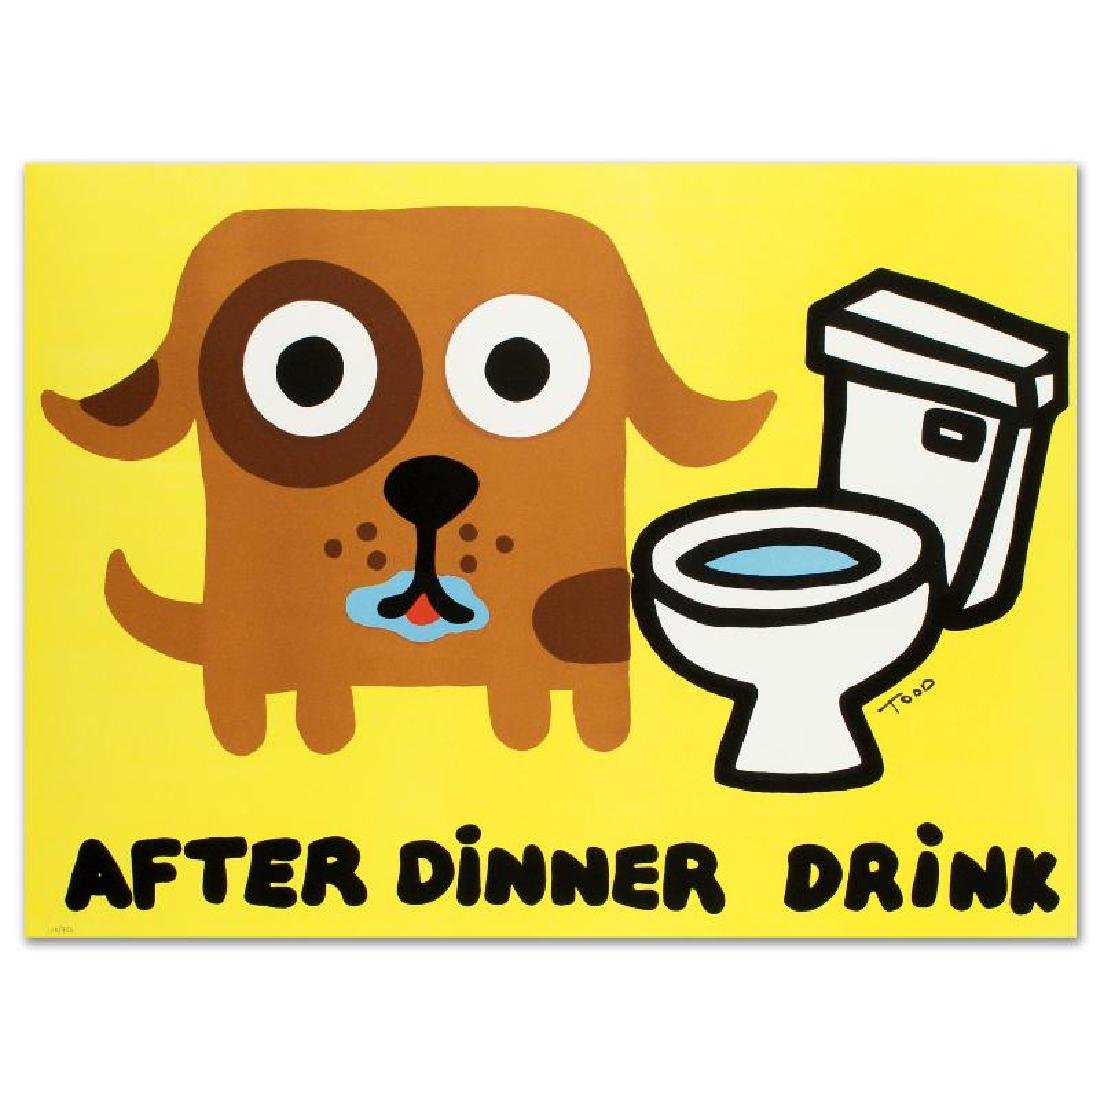 After Dinner Drink Limited Edition Lithograph by Todd